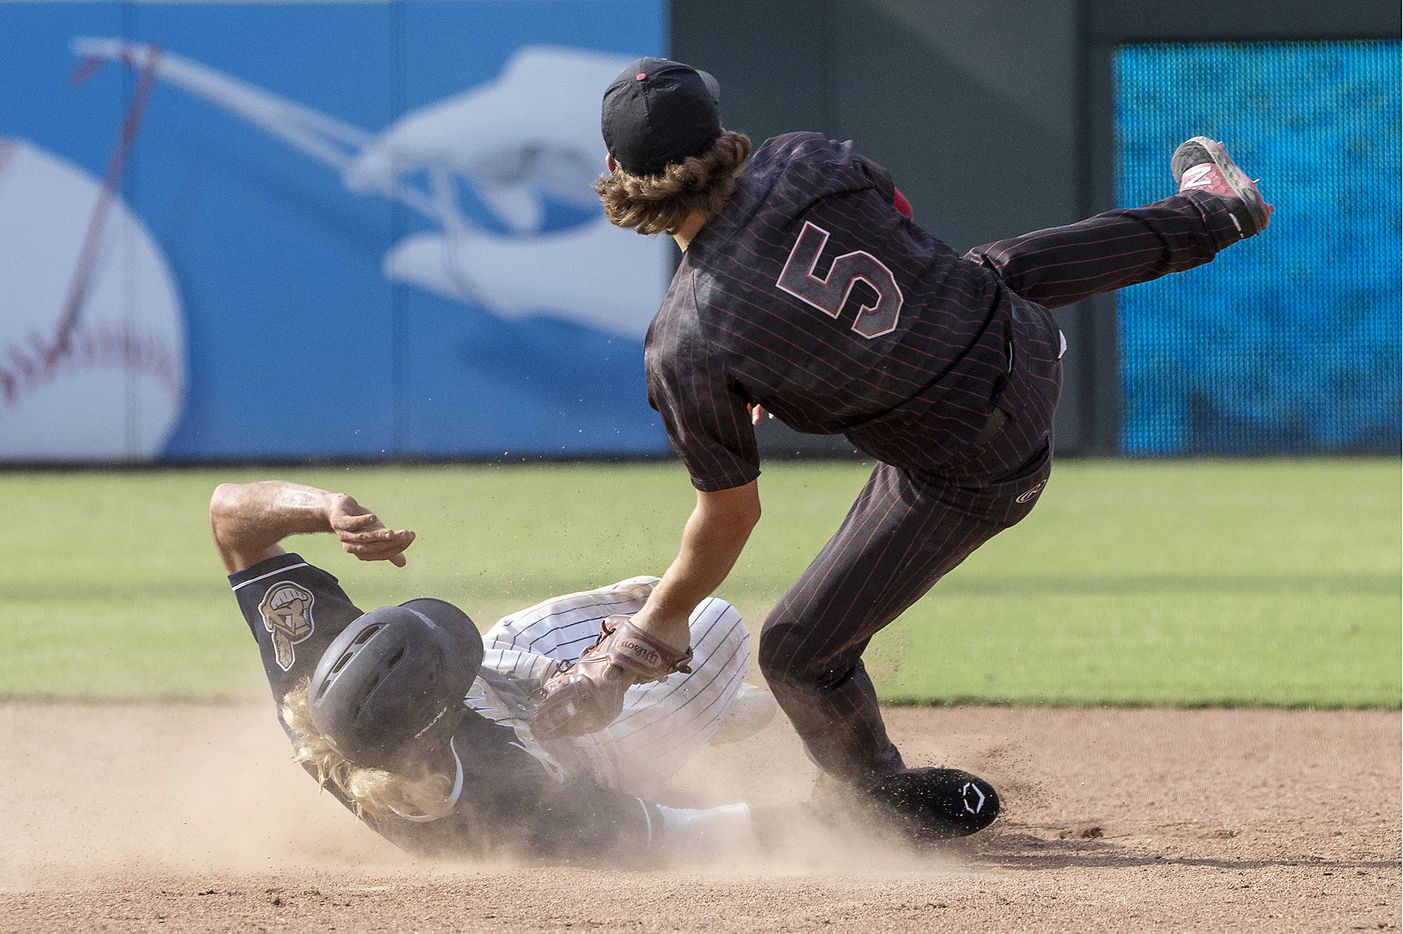 Rockwall-Heath Karson Krowka, (5), tags out Keller Gray Rowlett, (21), as they collide at second base during the fifth inning of the 2021 UIL 6A state baseball final held, Saturday, June 12, 2021, in Round Rock, Texas.  Rockwall-Heath defeated Keller 4-3.   (Rodolfo Gonzalez/Special Contributor)